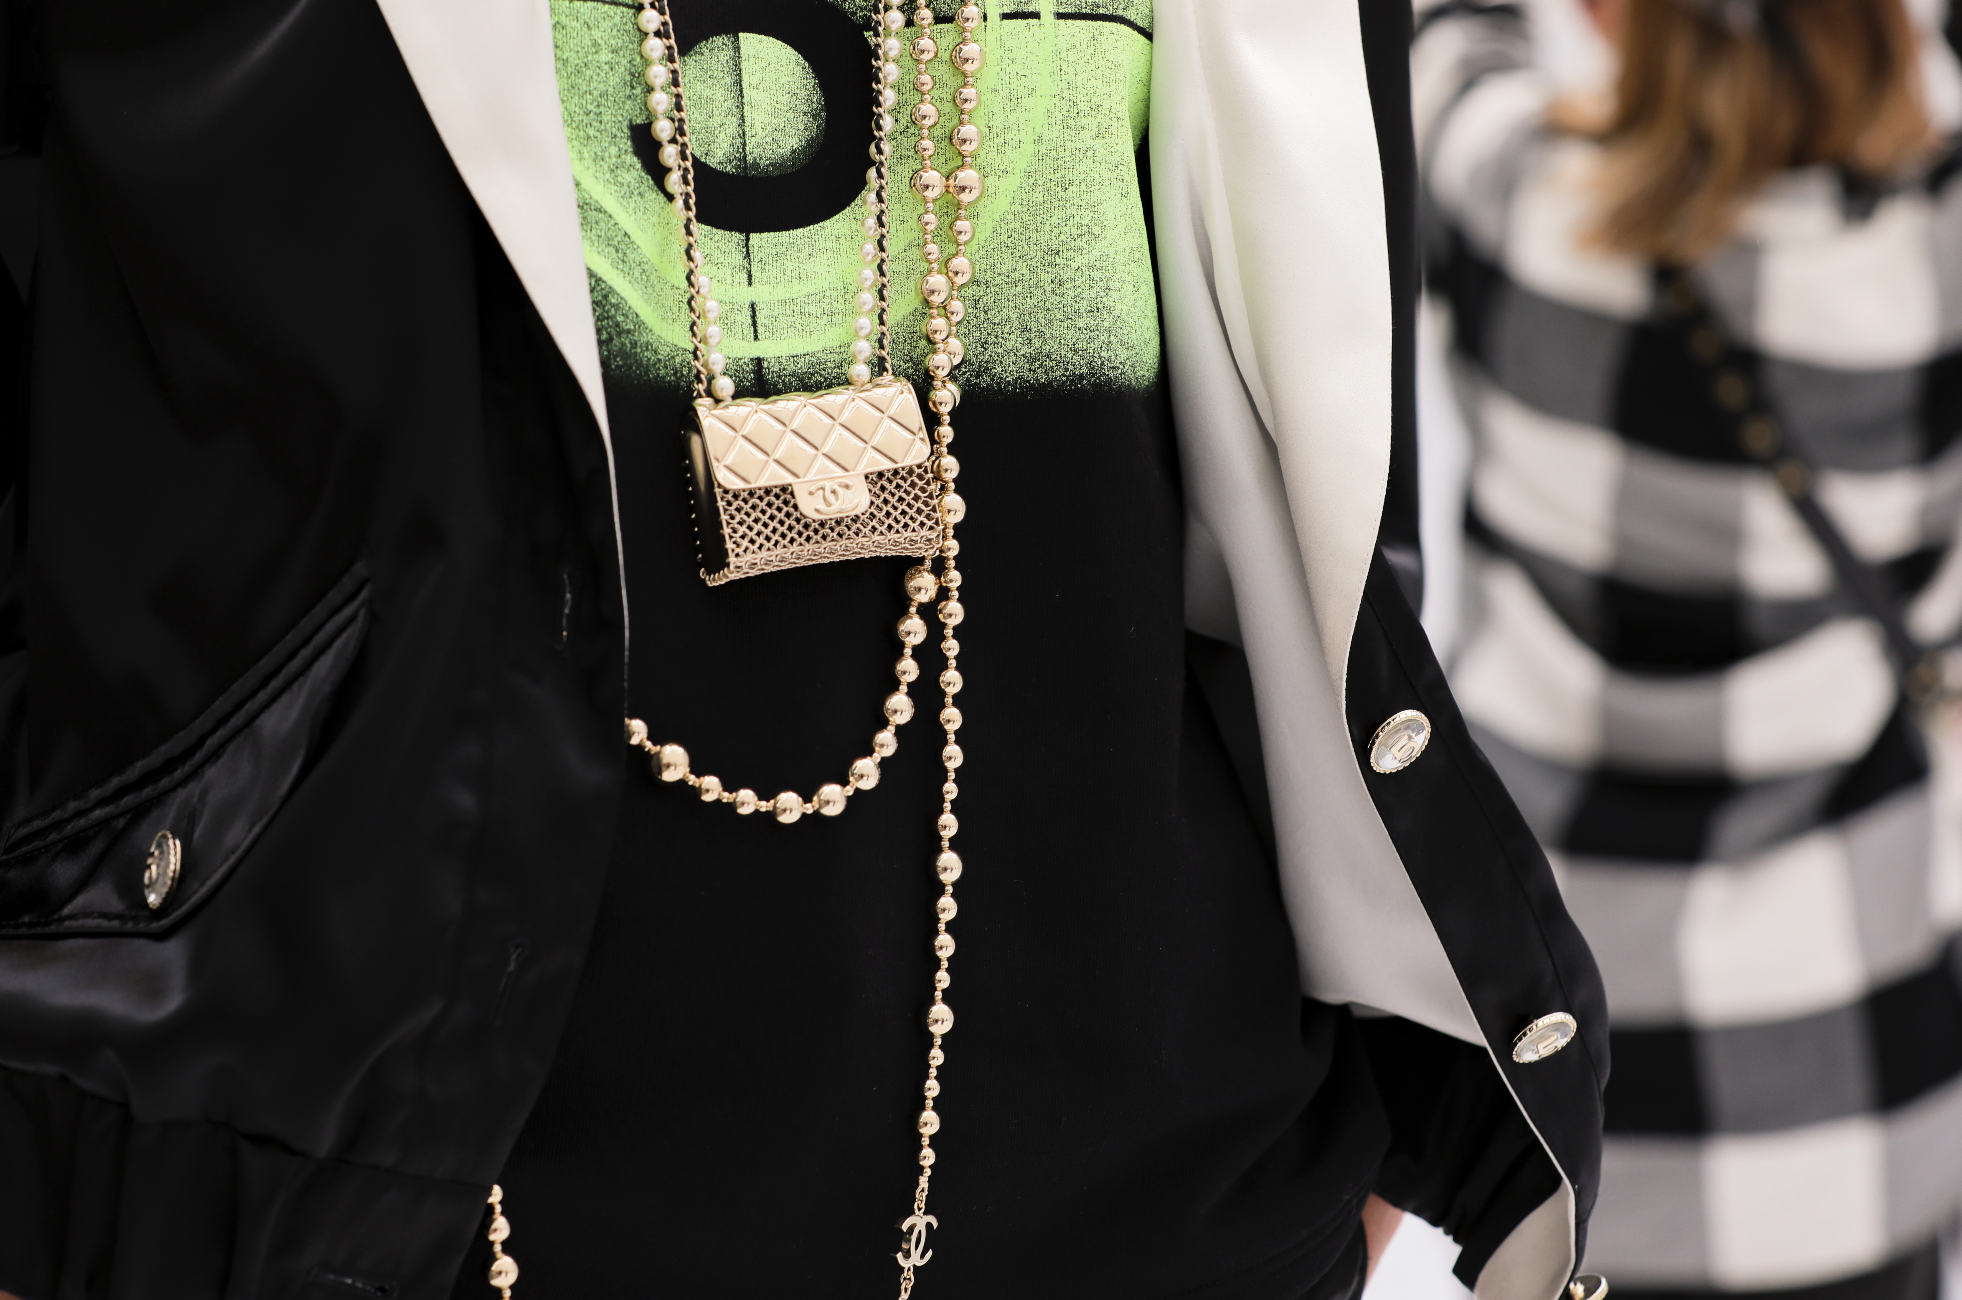 Micro bags, statement jewellery pieces and house icons take centre stage at CHANEL's Spring-Summer 2021 Ready-to-Wear showcase (фото 3)